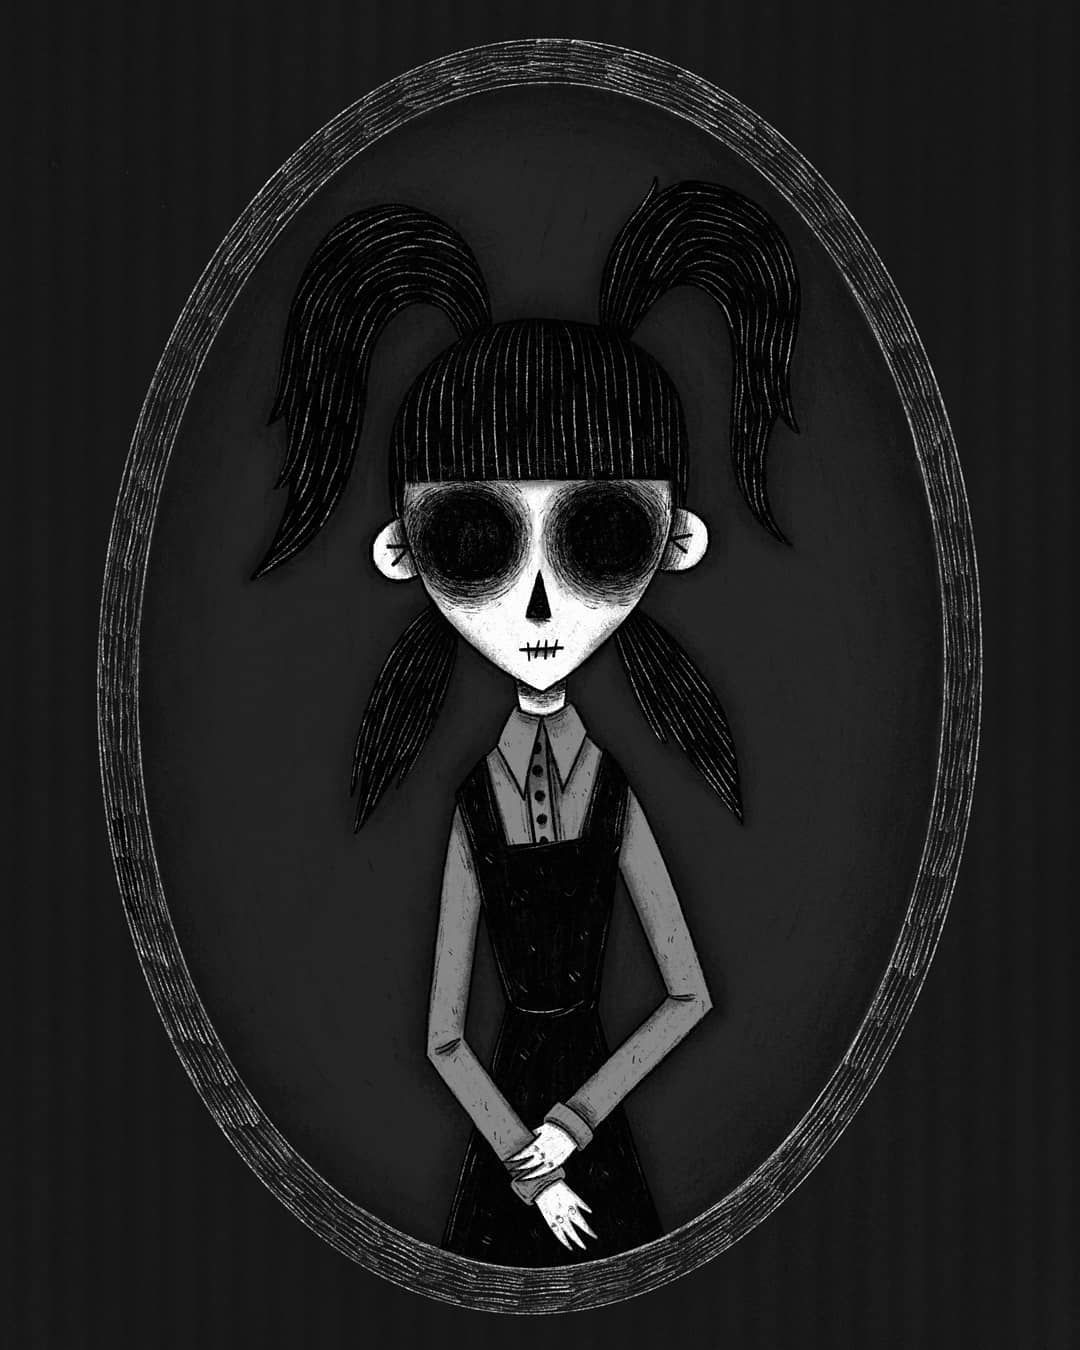 Elsa Van Helsing The Next And Final Drawing Of The Frankenweenie Portraits Is Going To Be Victor Of Course Drawings Tim Burton Films Goth Art